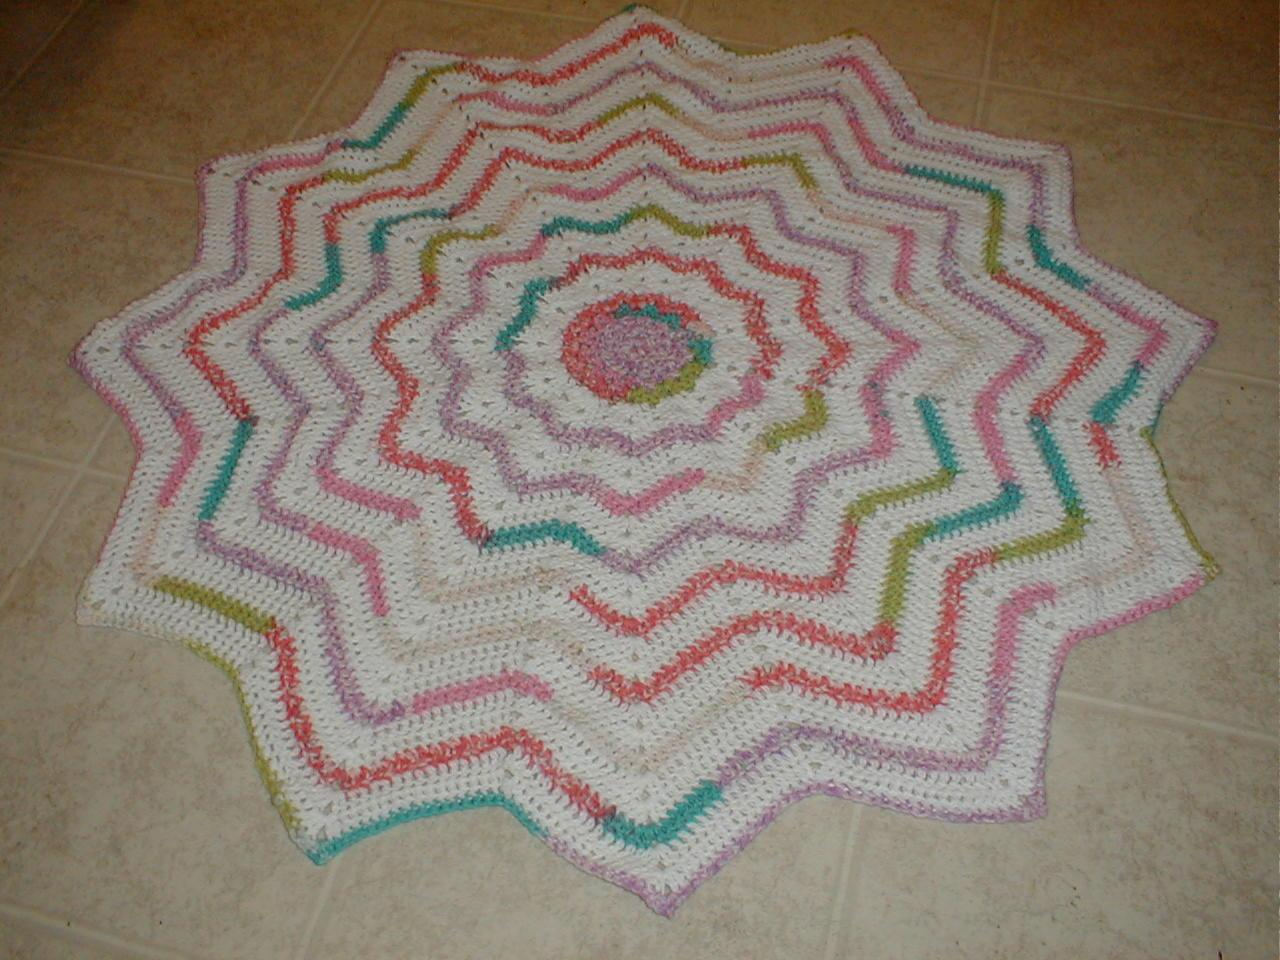 Crochet Pattern Round Ripple Afghan : Karens Crocheted Garden of Colors: 12-Point Round Ripple ...